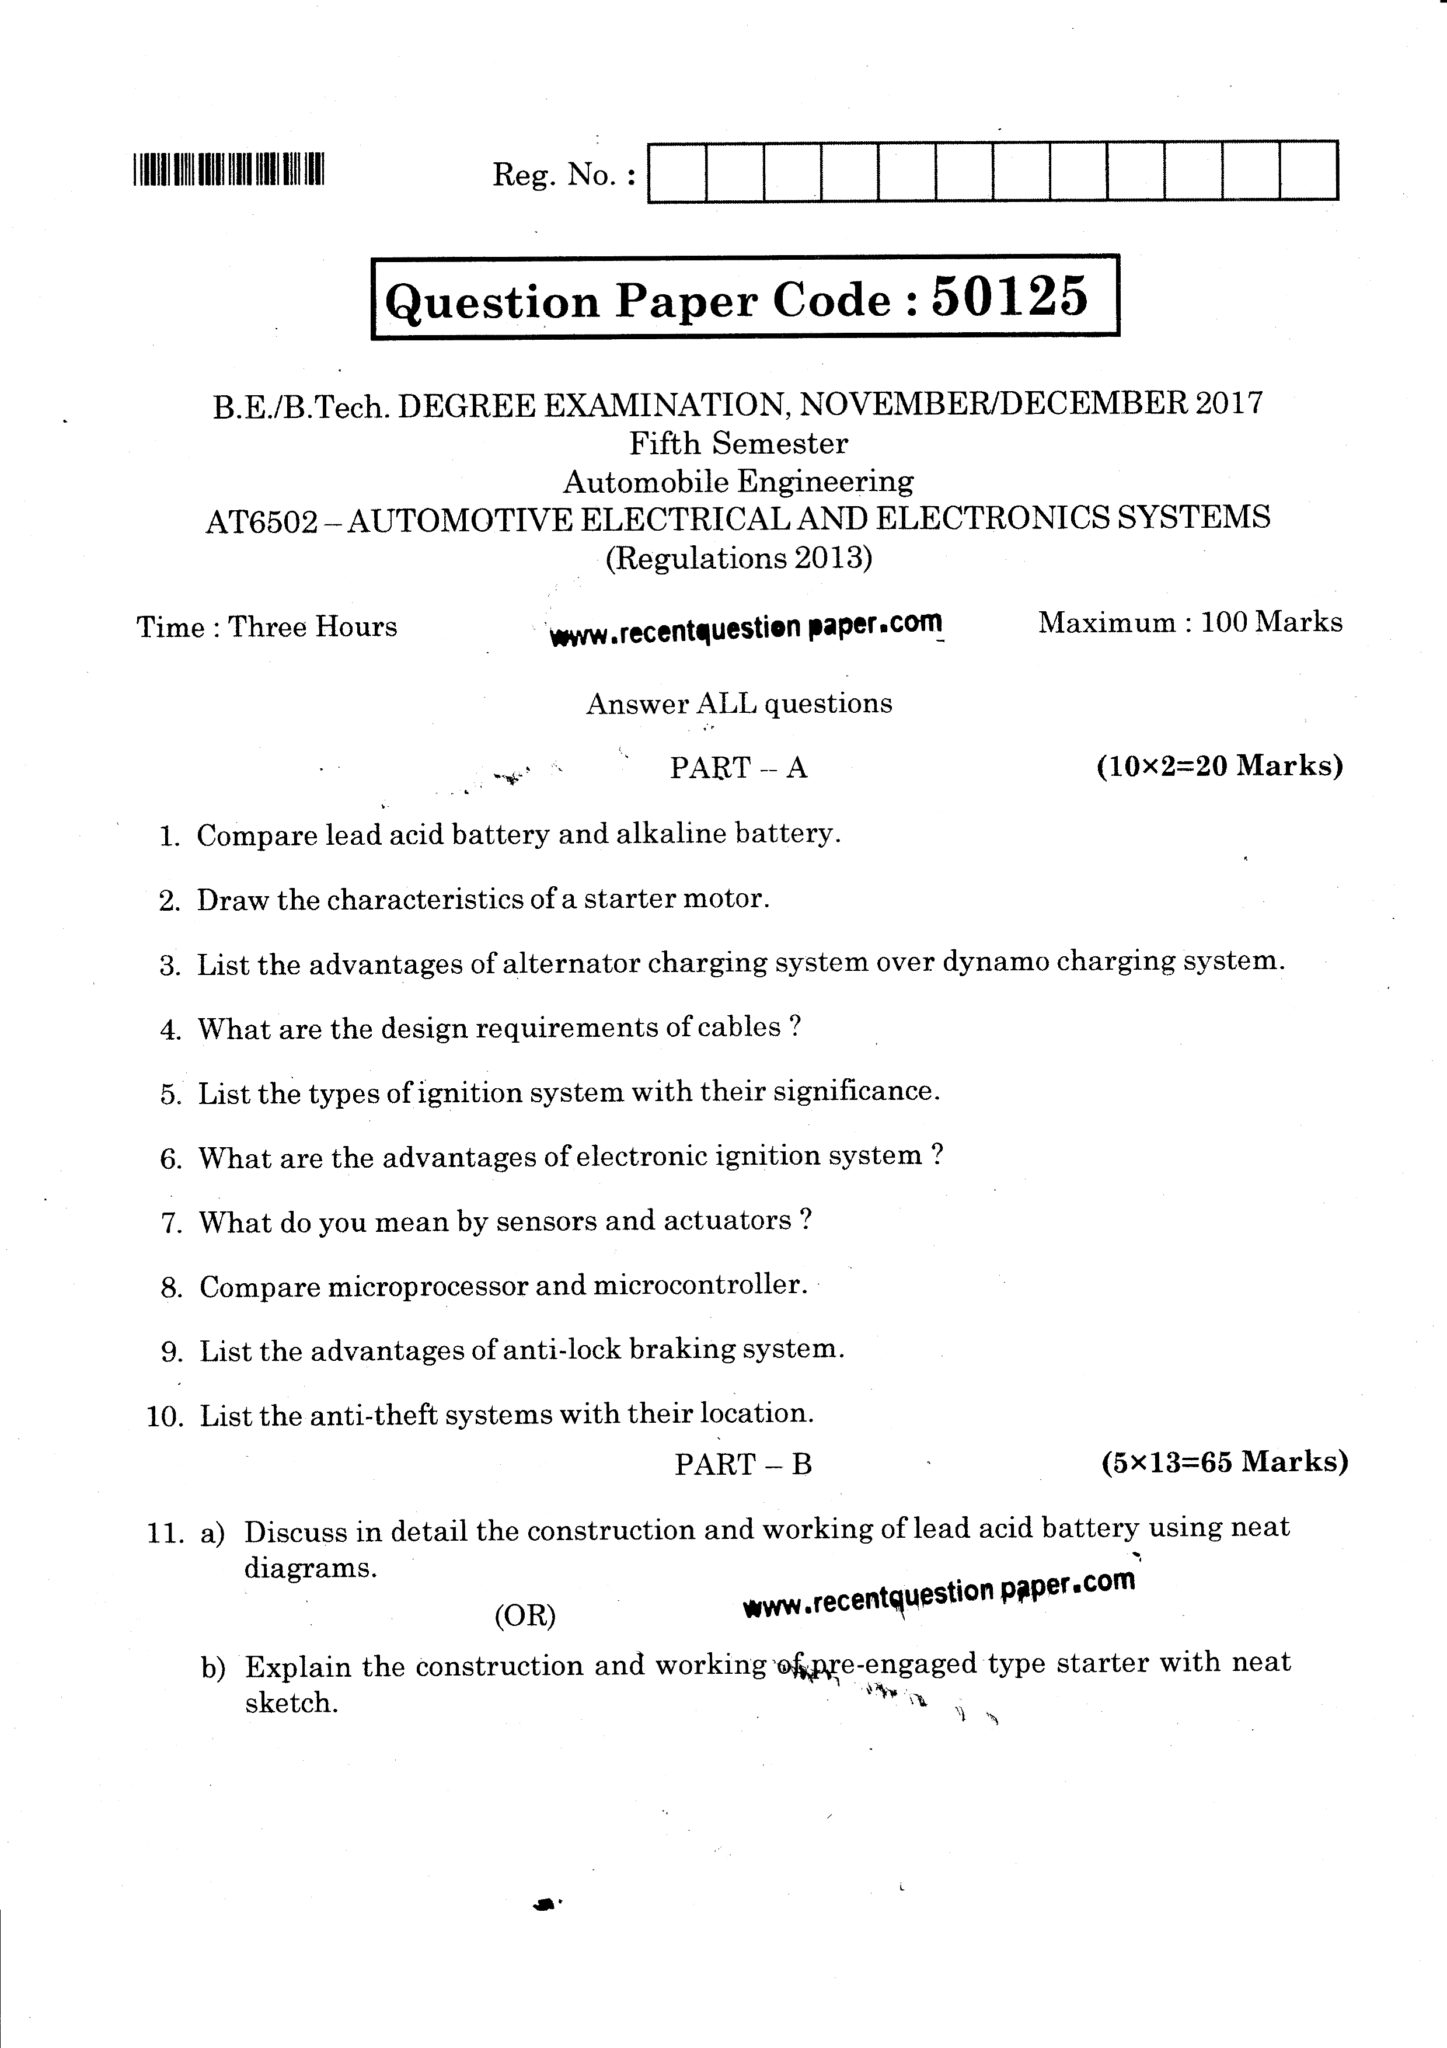 AT6502 Automotive Electrical And Electronics Systems Question Paper